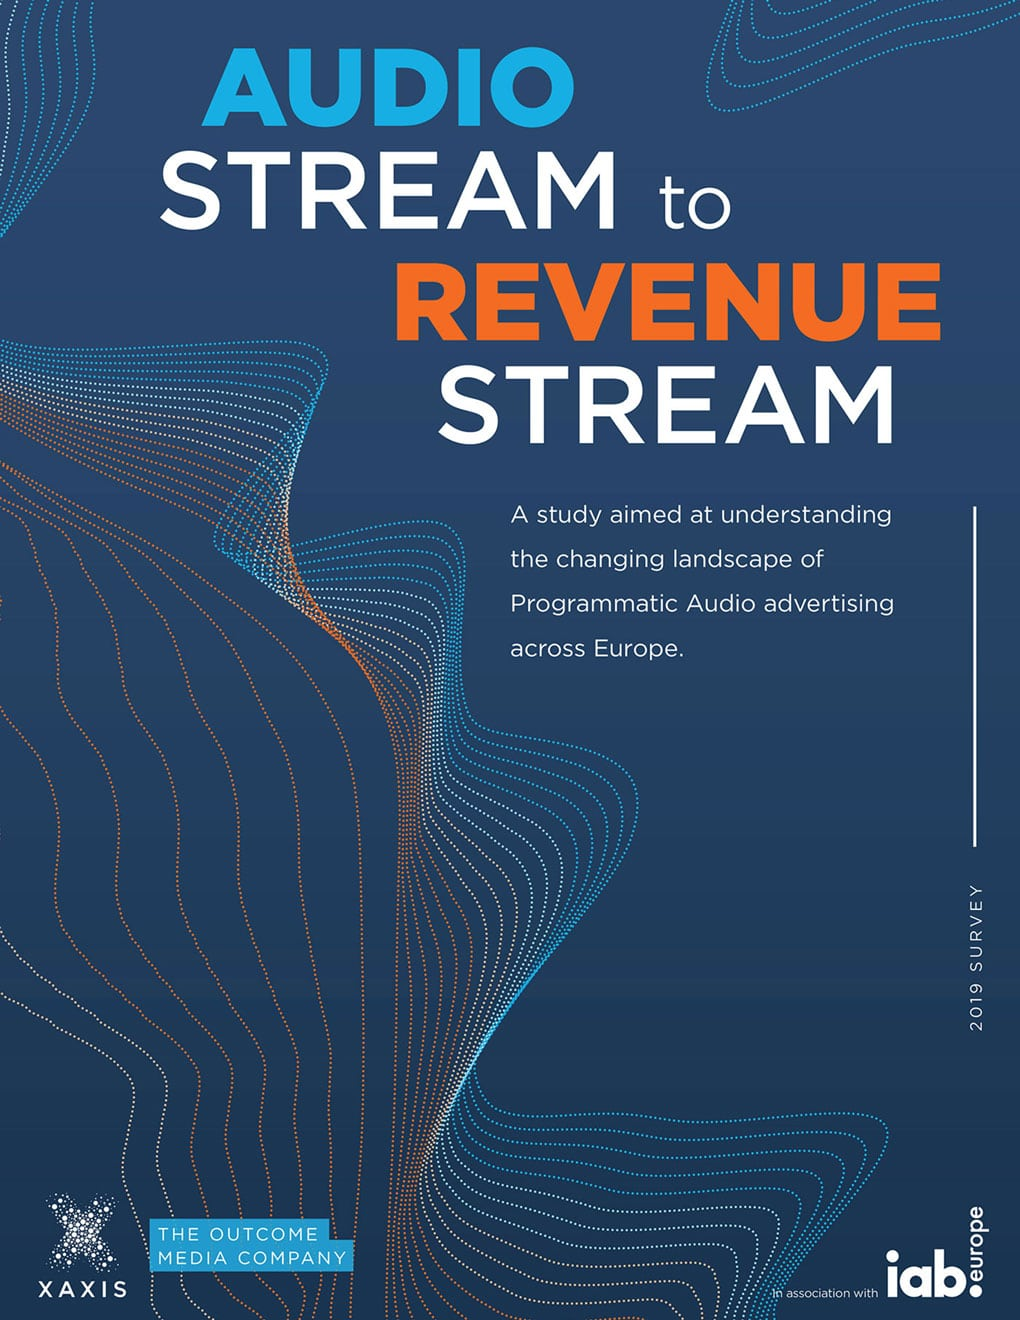 Audio Stream to Revenue Stream Report